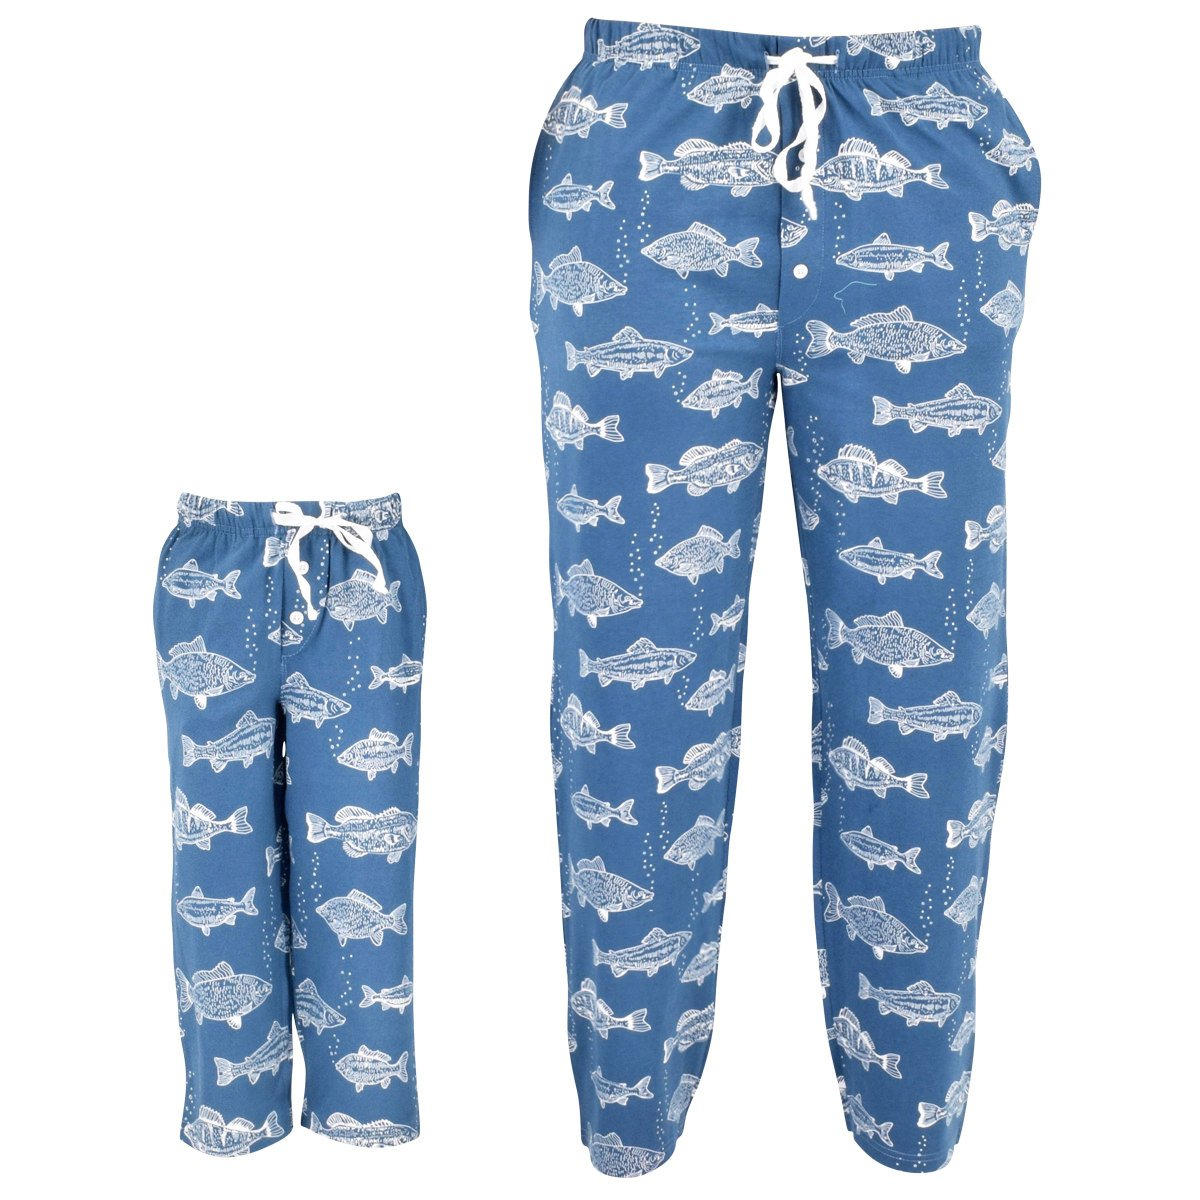 Unique Baby UB Adult Fisherman Print Matching Family Father's Day Pajama Pants (S)